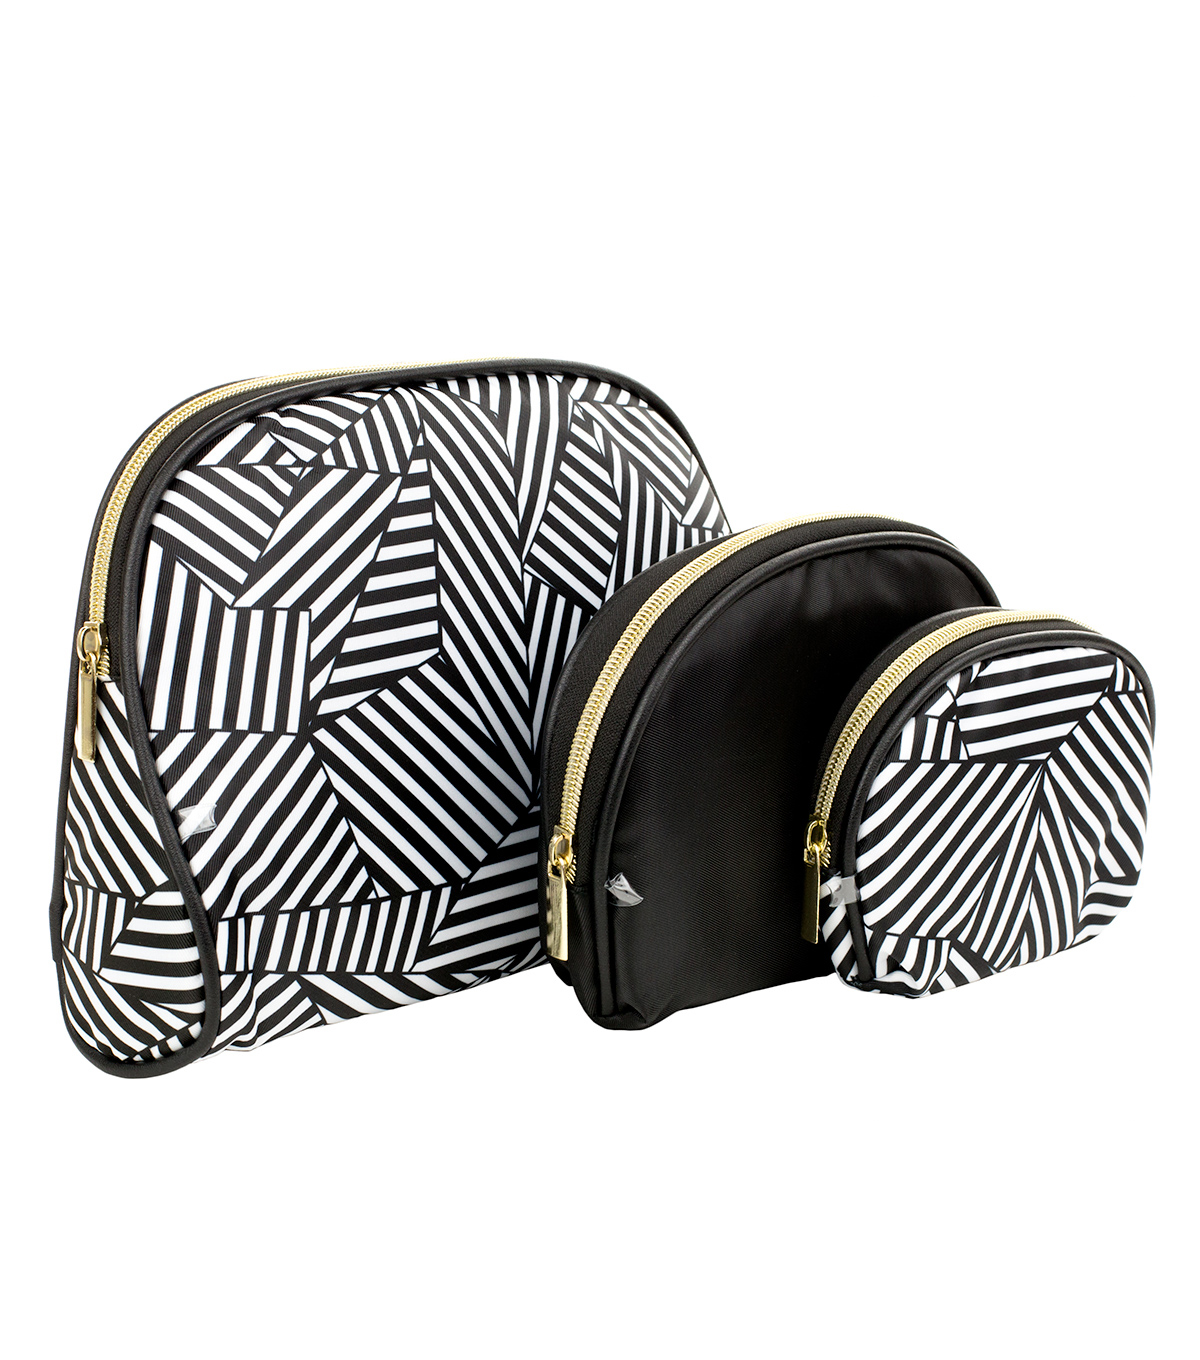 Black Stripes Cosmetic Bags Set of 3